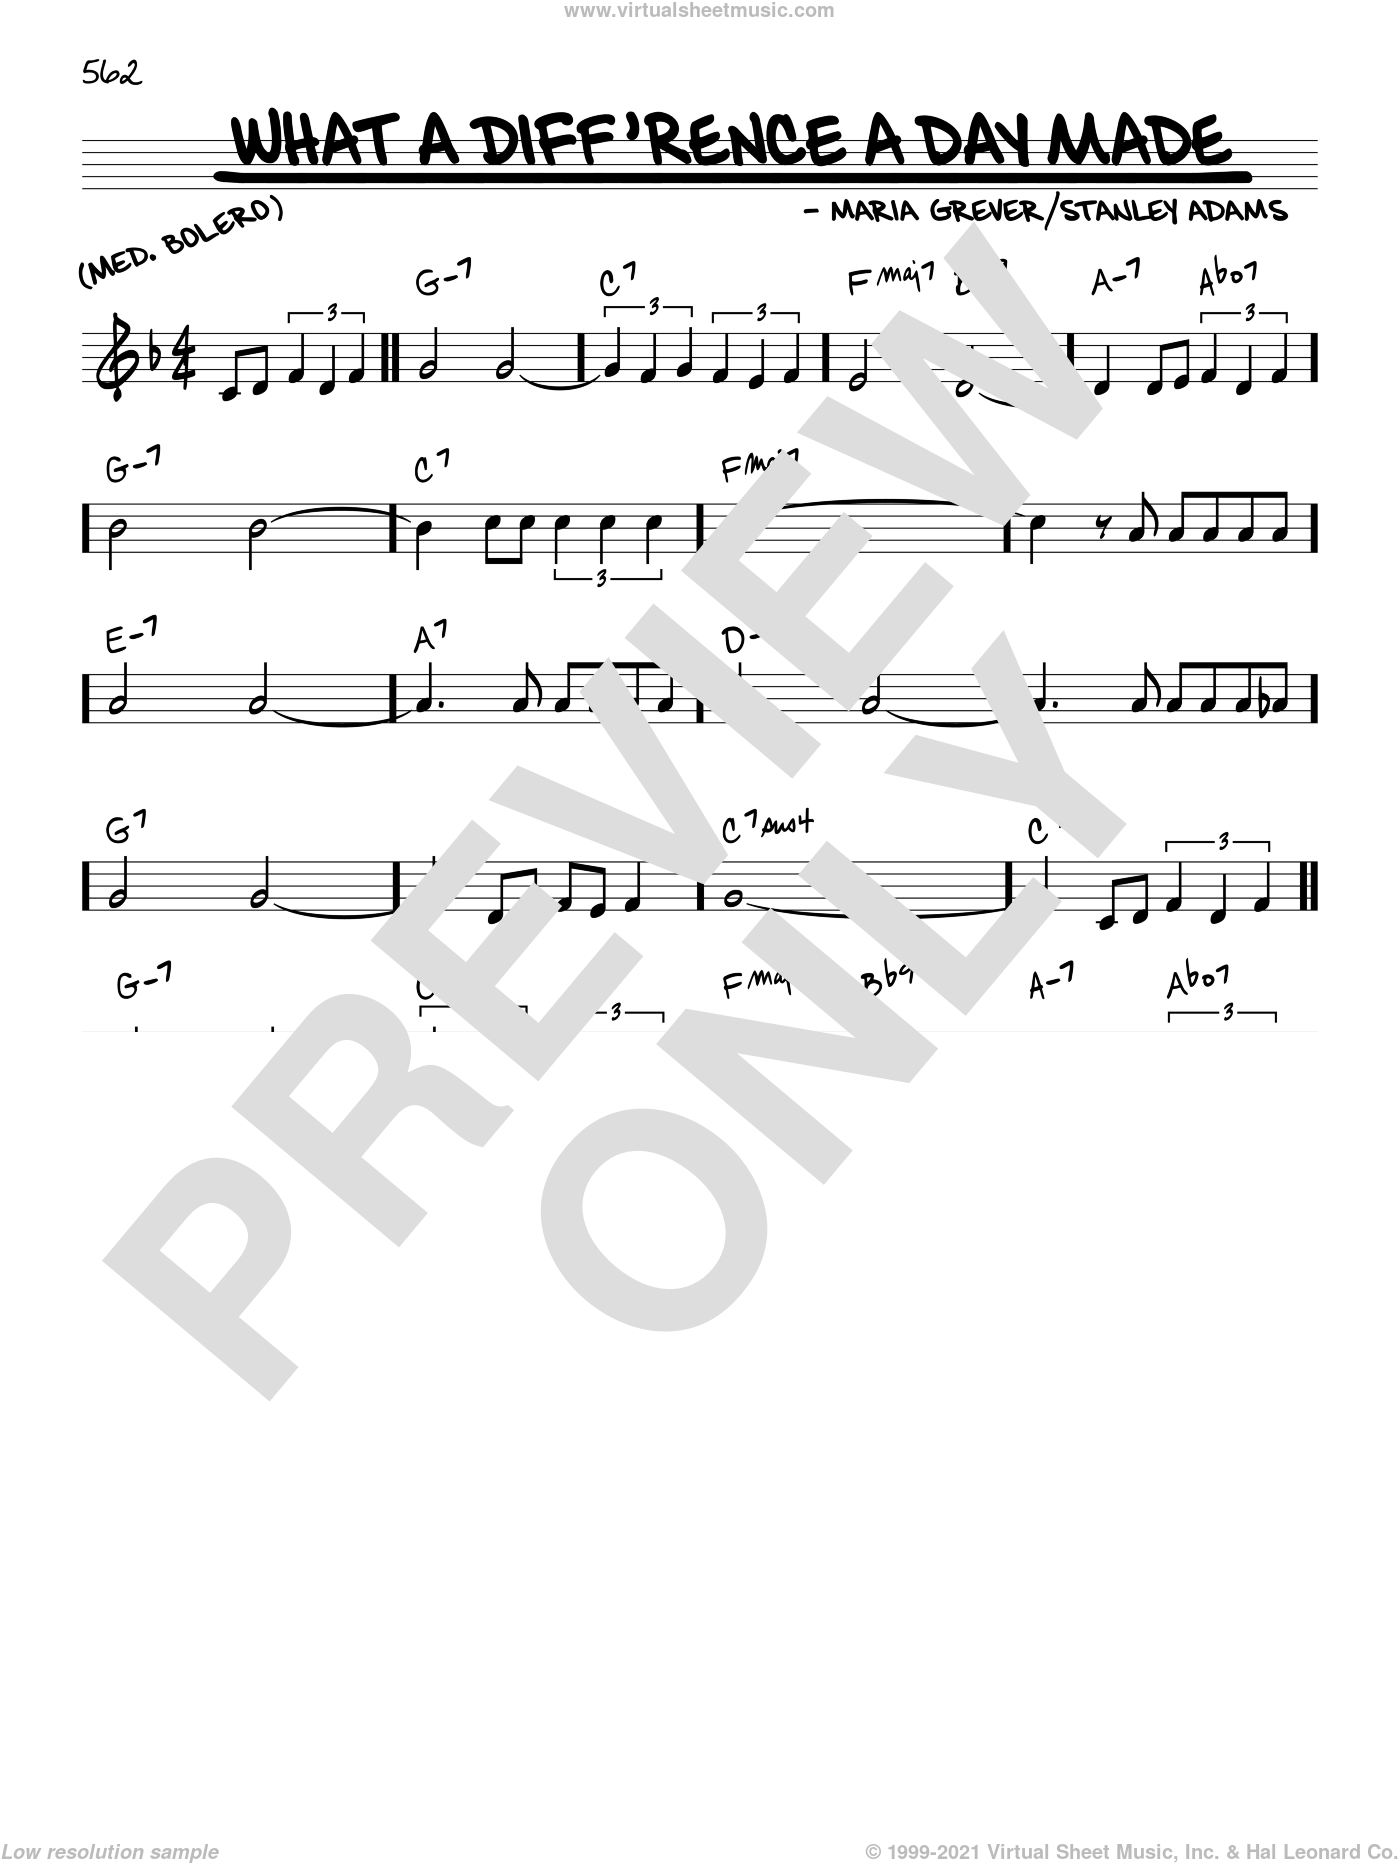 What A Diff'rence A Day Made sheet music for voice and other instruments (C) by Maria Grever